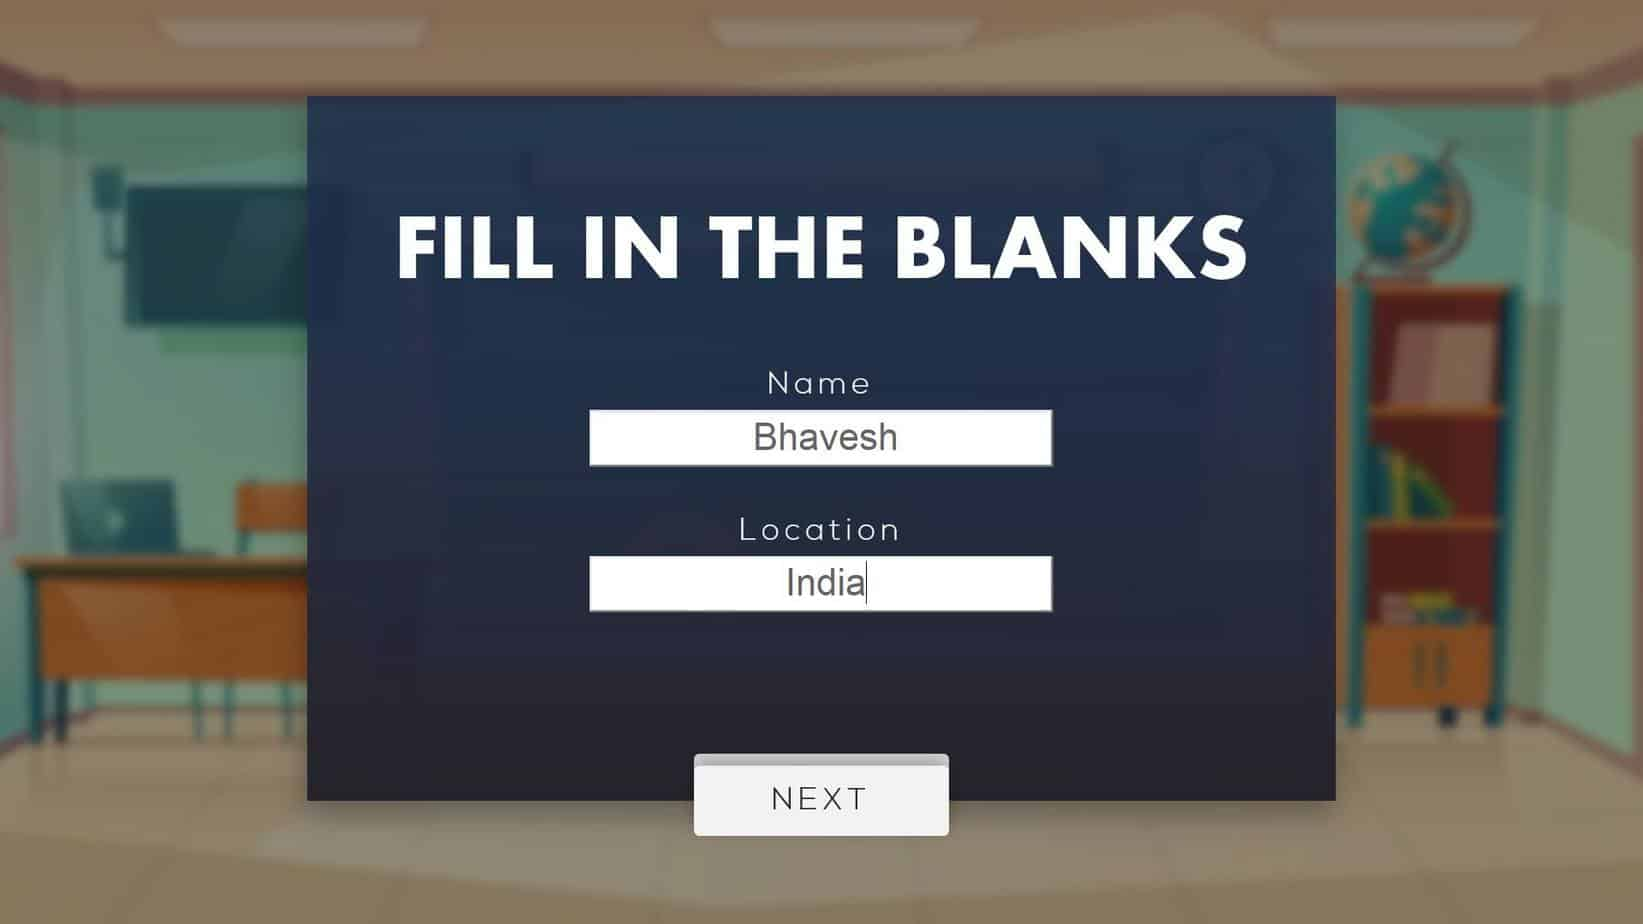 Download Fill in the blanks PPT TEMPLATE FOR FREE - Download Fill in the Blanks PowerPoint Template Game